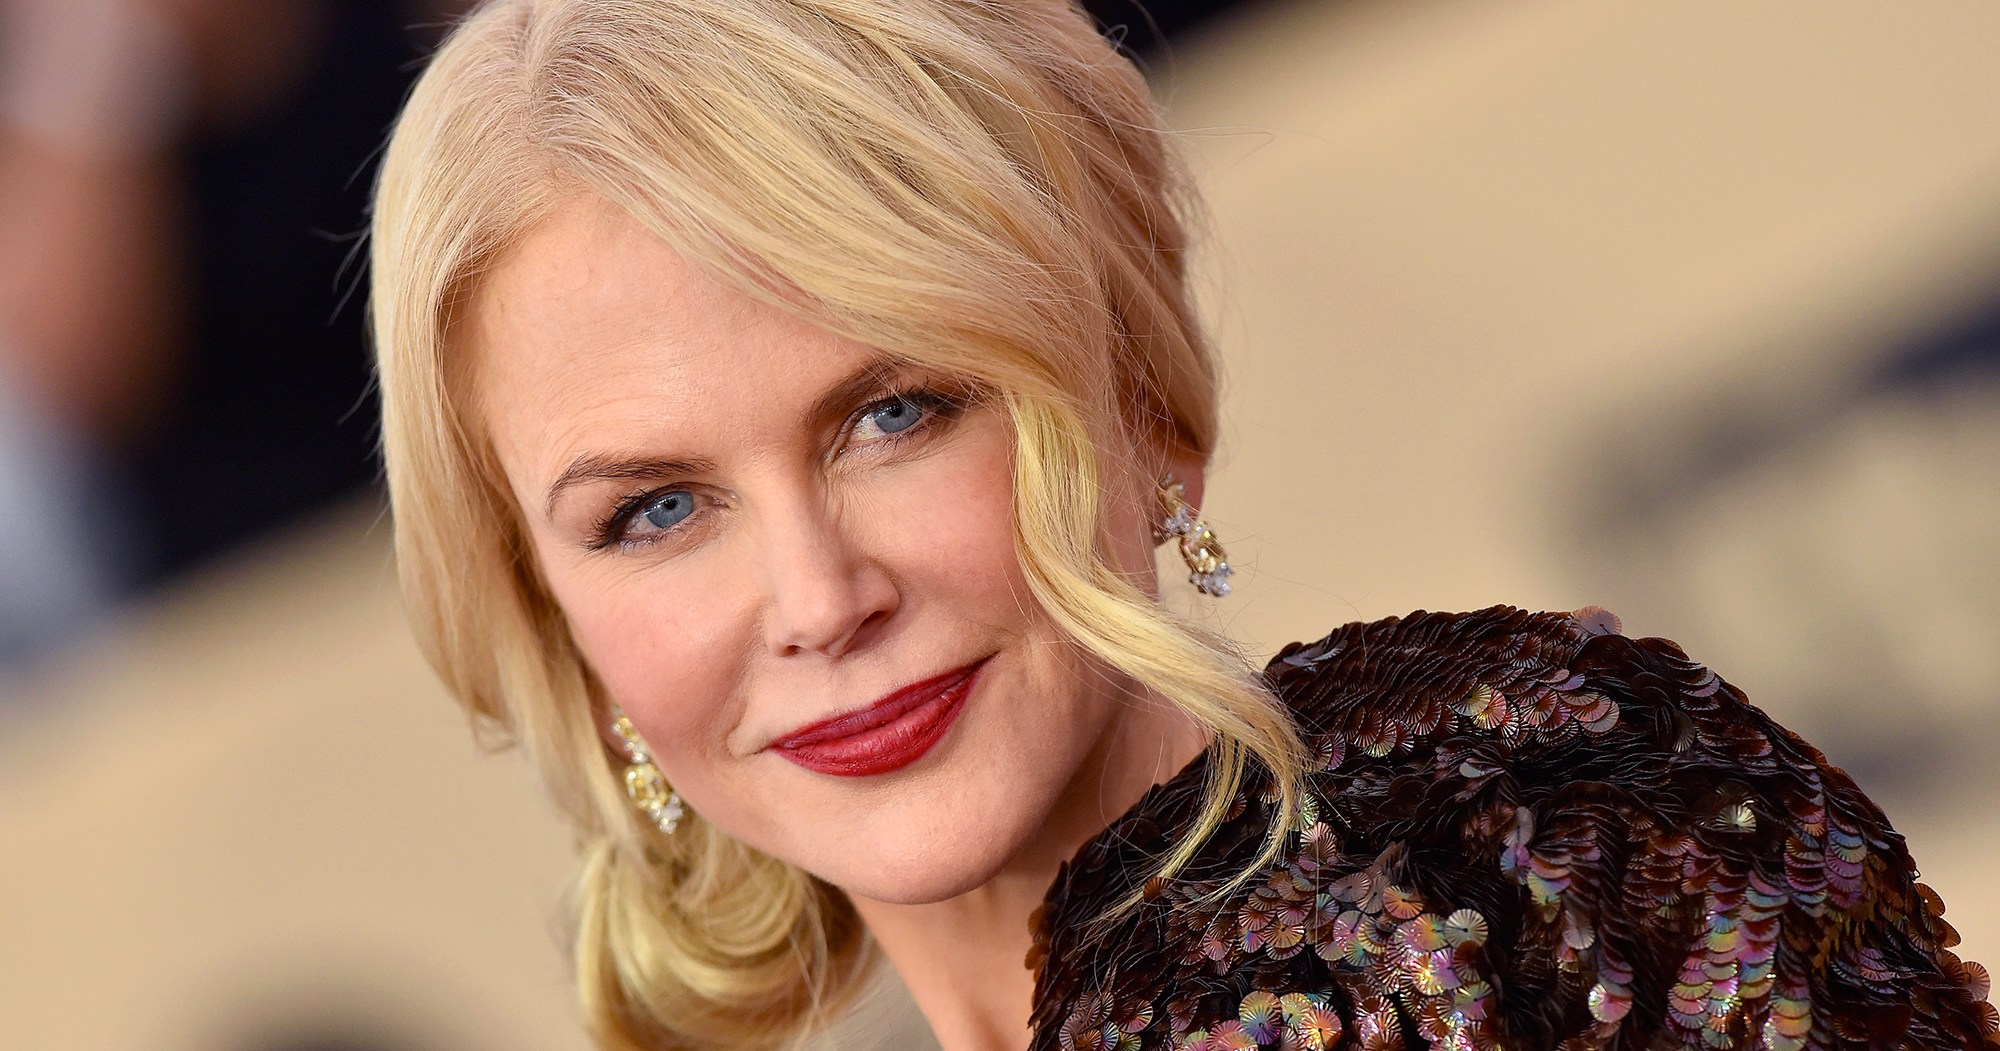 Nicole Kidman: I Moved to the U.S. Because 'I Fell in Love and Got Married' to Tom Cruise